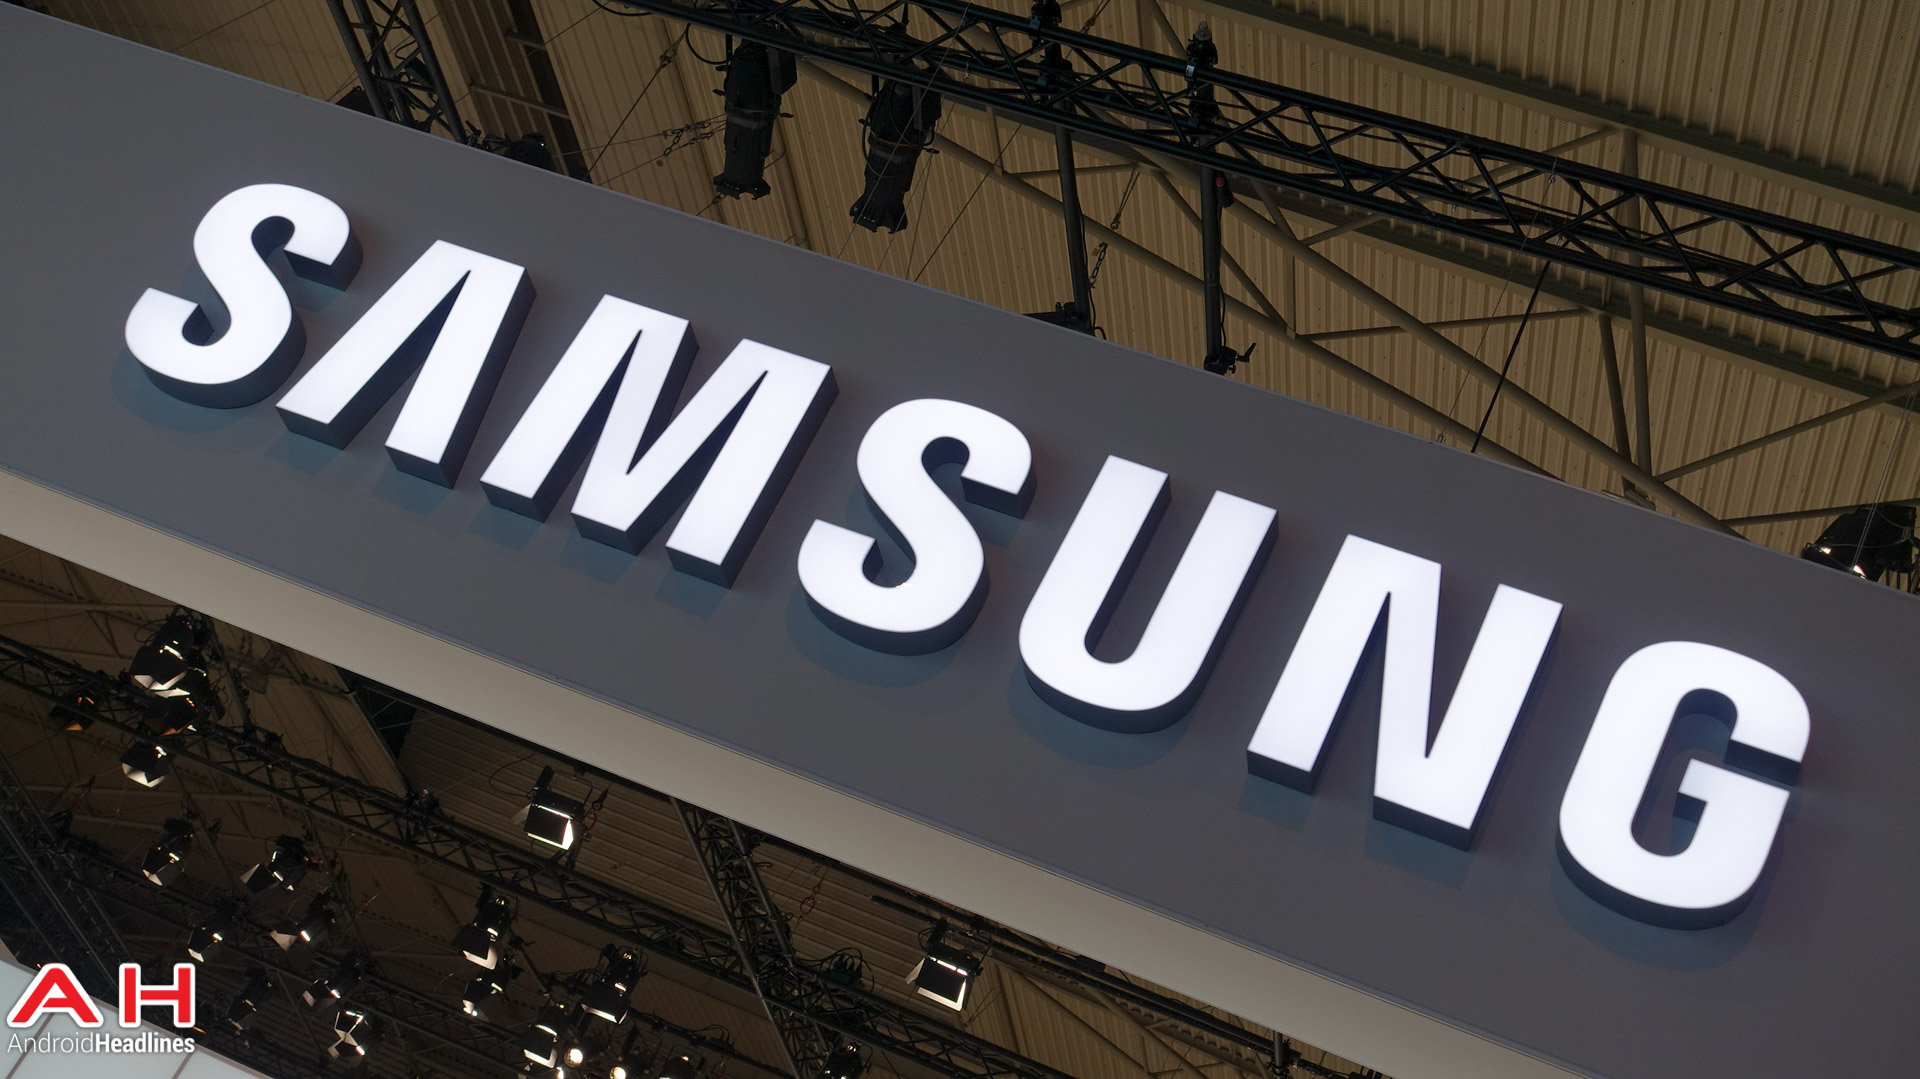 samsung-and-amd-might-be-marrying-for-extra-tech